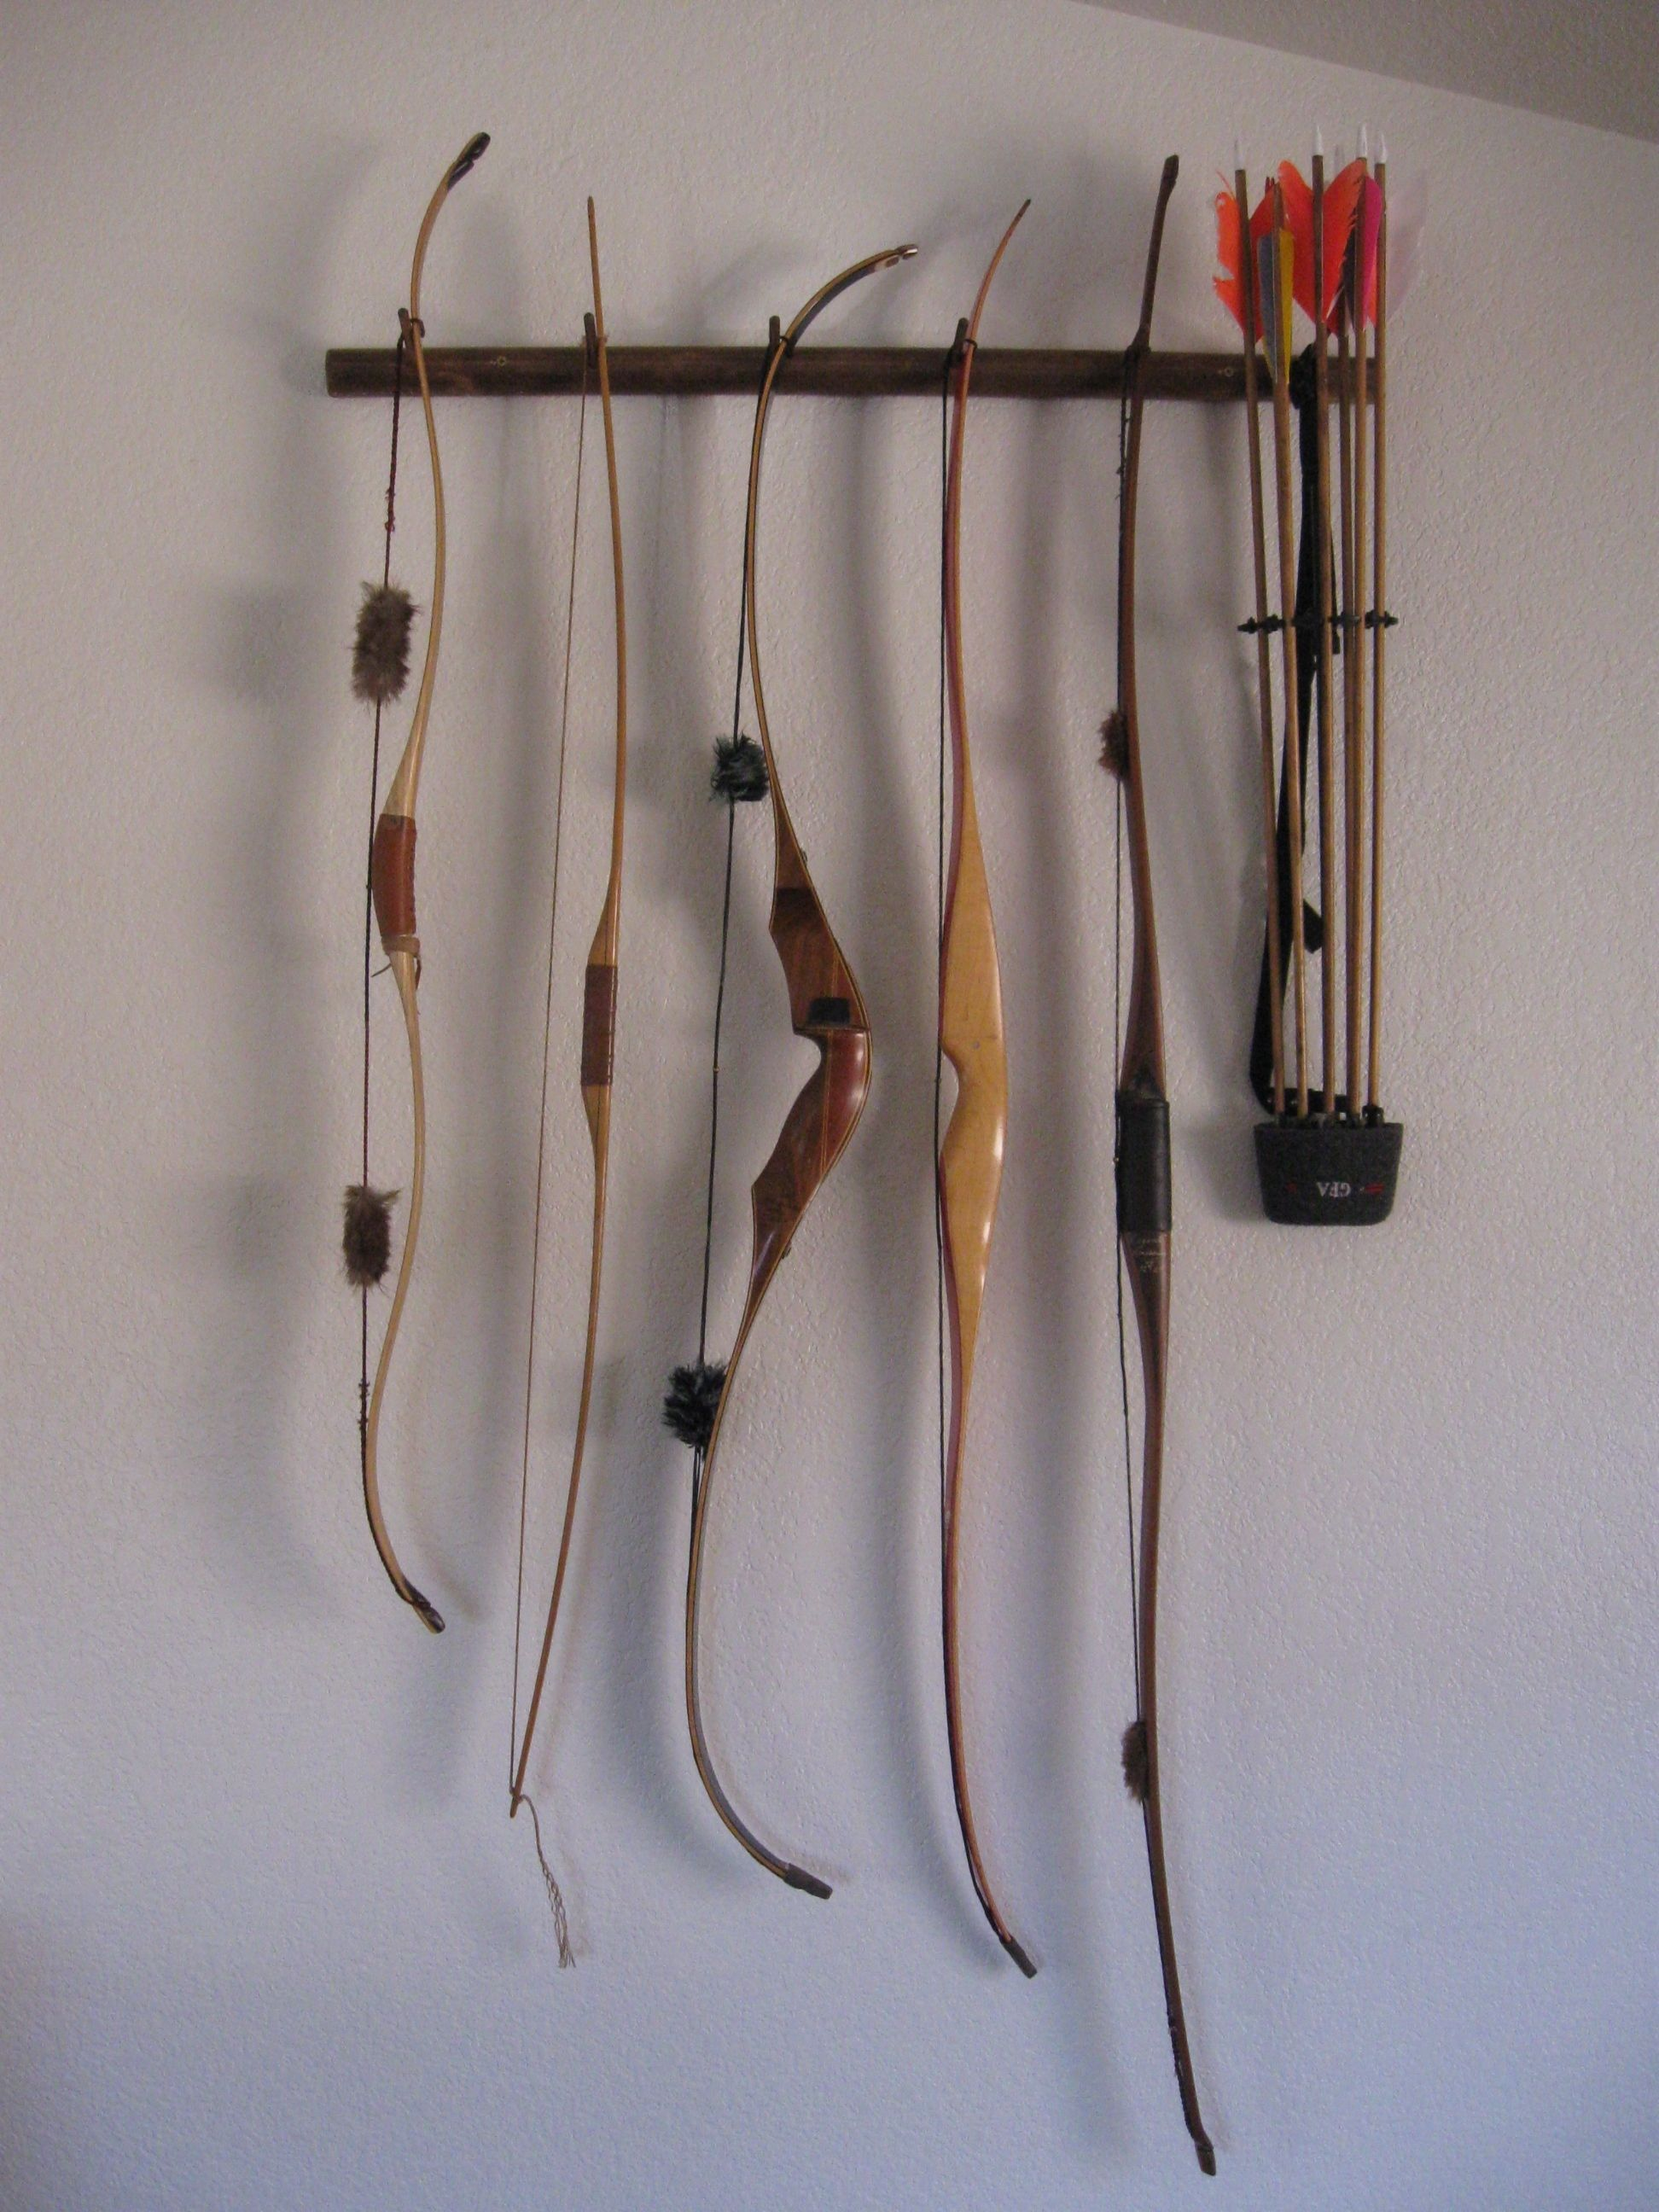 I Built This Rack To Display My Longbow And Recurve Bows